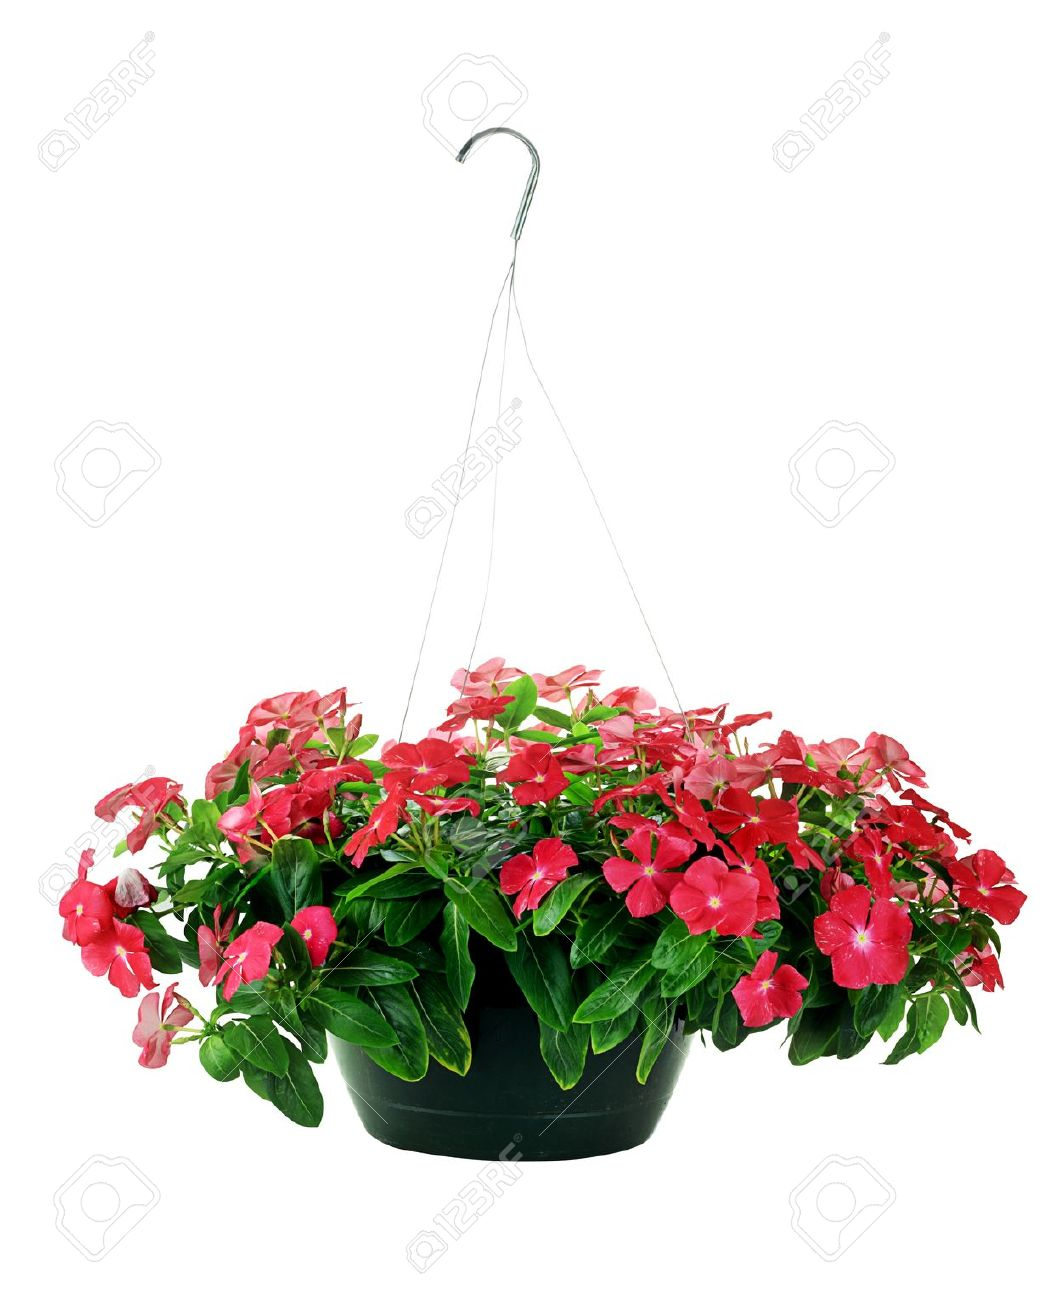 Free Hanging Flower Basket Photos.